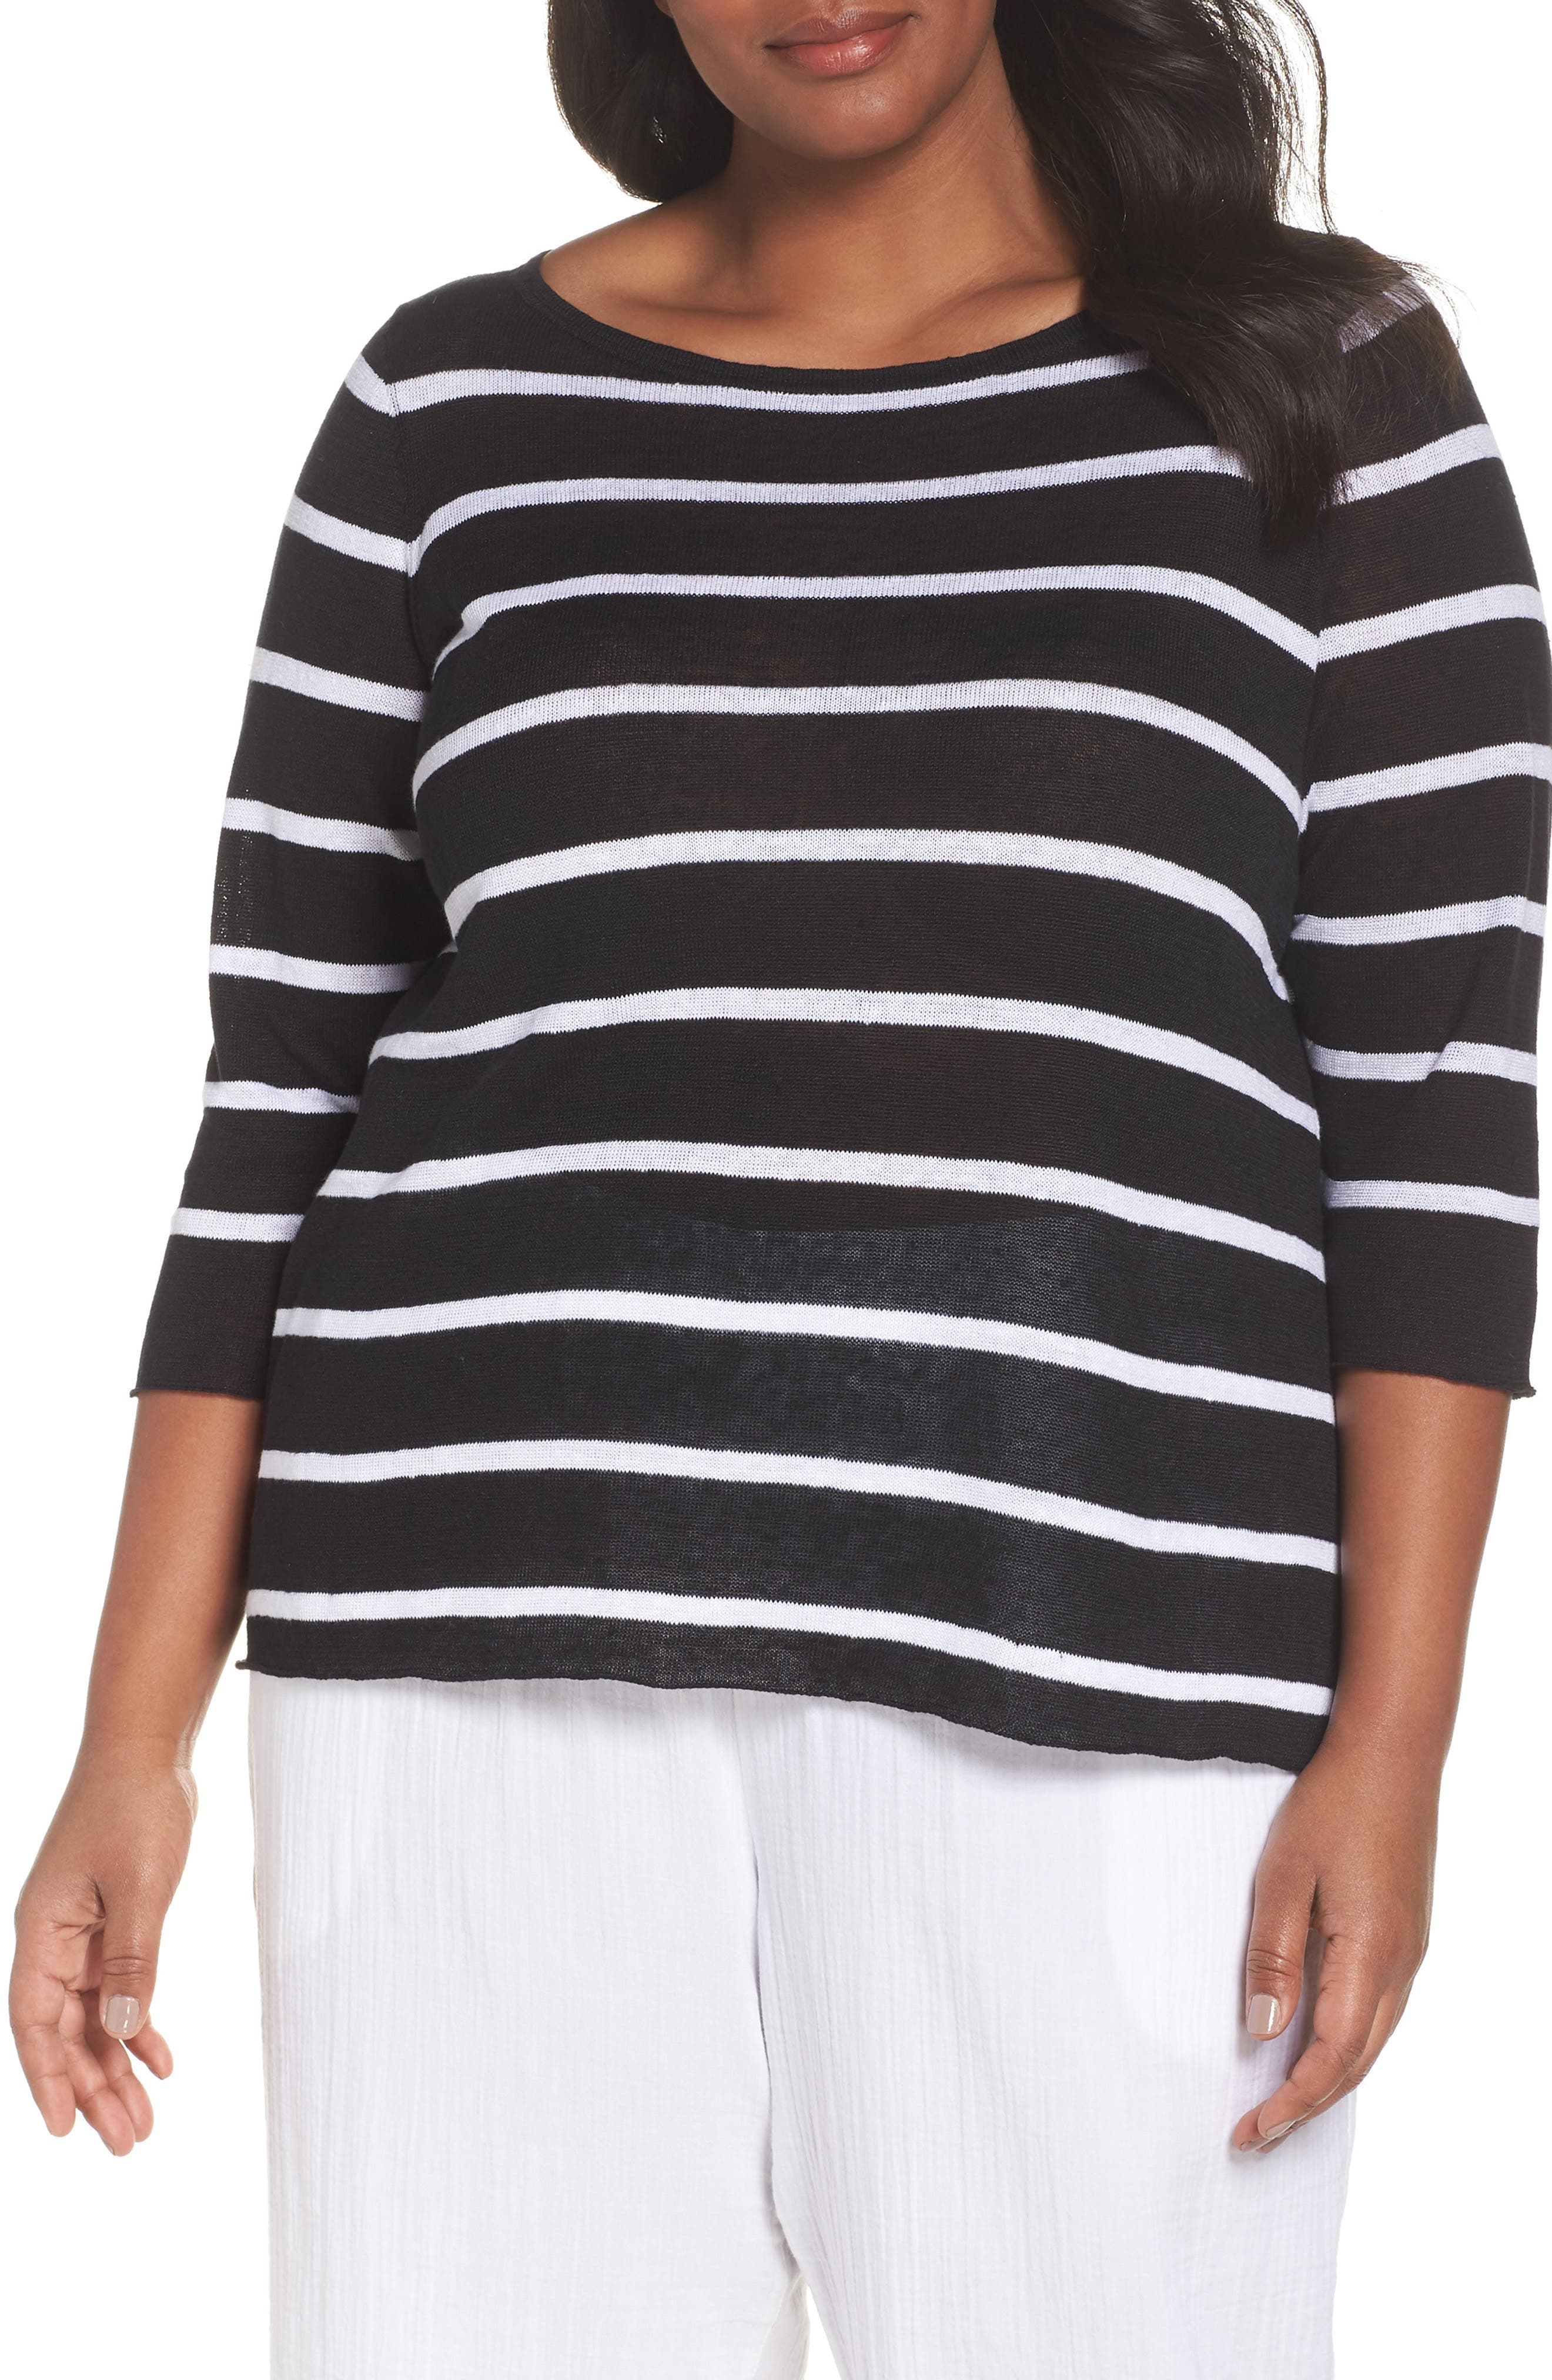 Bateau Neck Stripe Linen Top,                             Main thumbnail 1, color,                             Black/ White